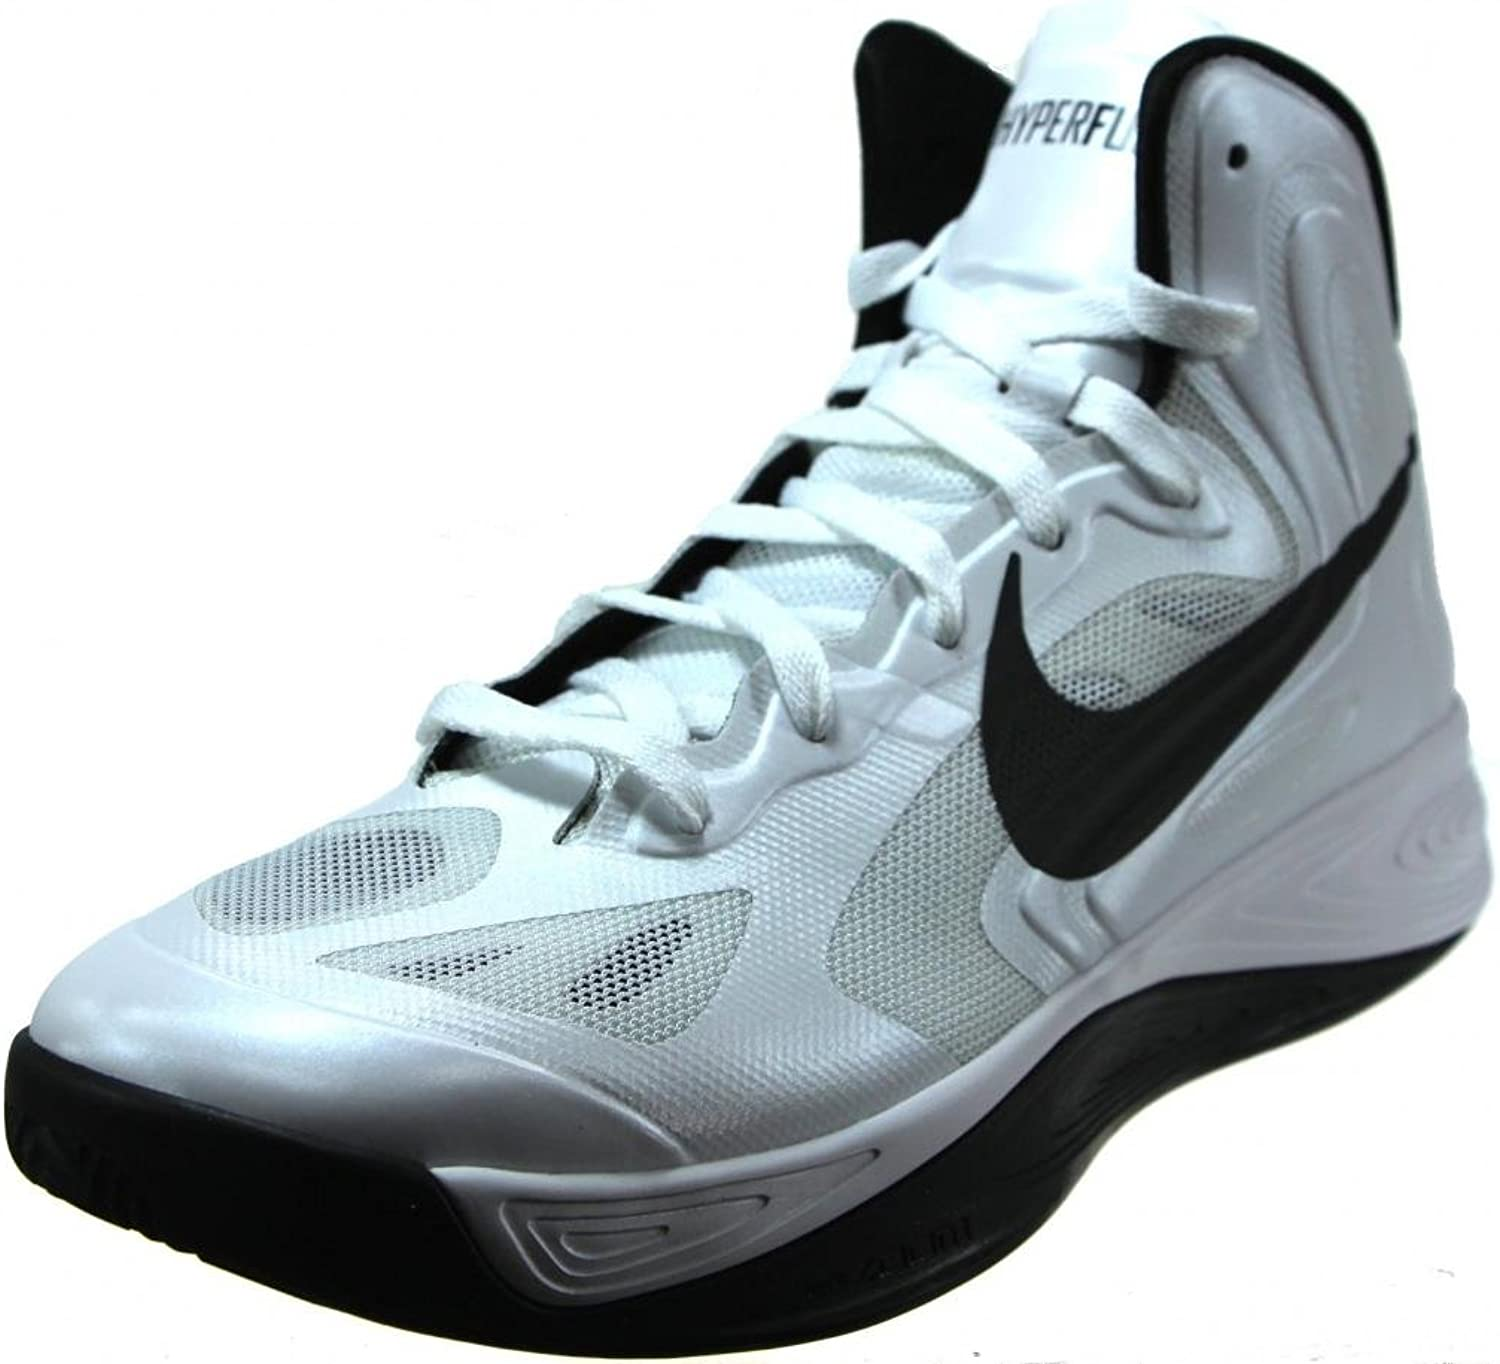 Nike Hyperfuse TB Men's Basketball shoes